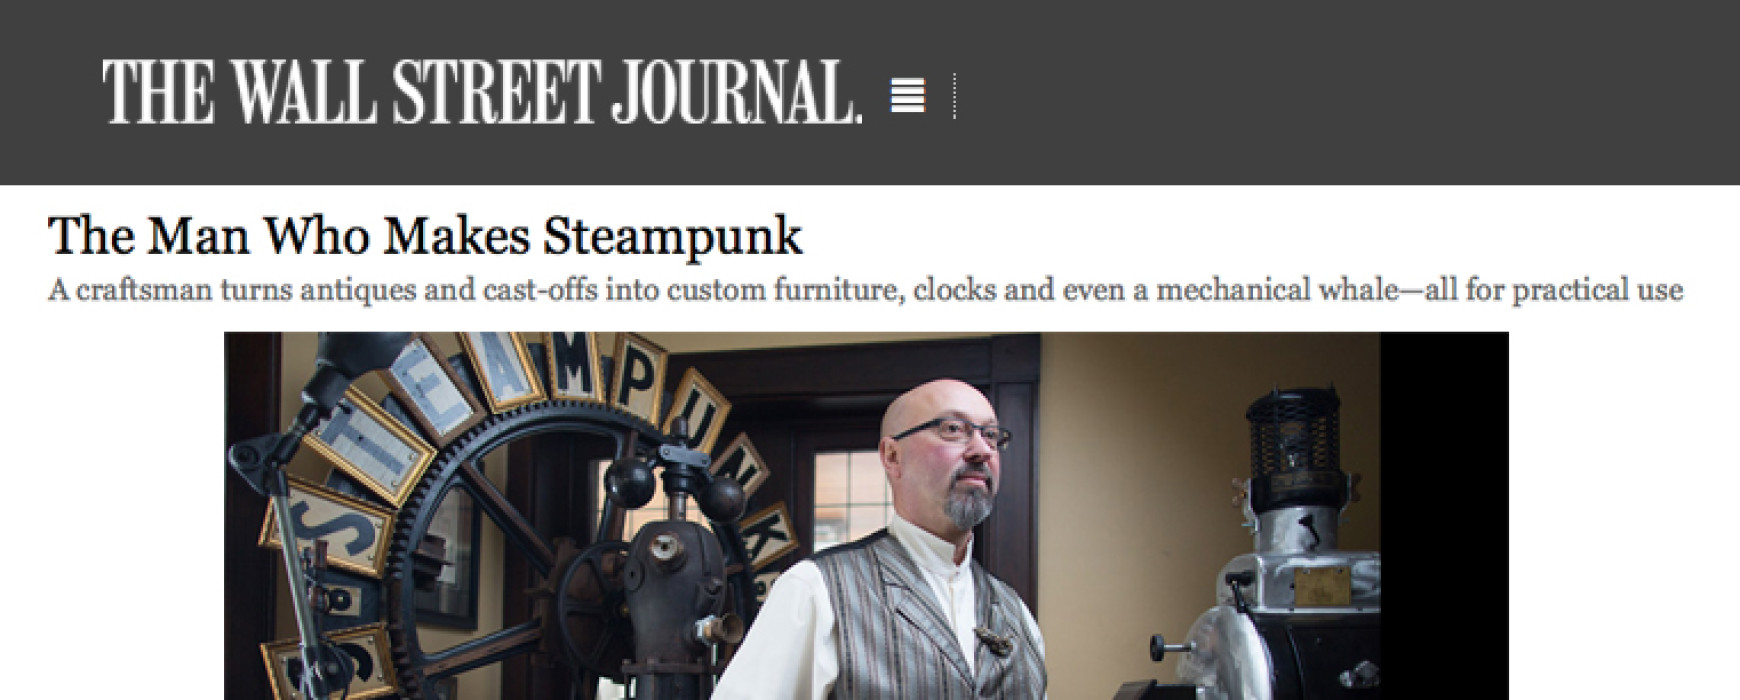 WSJ: The Man Who Makes Steampunk